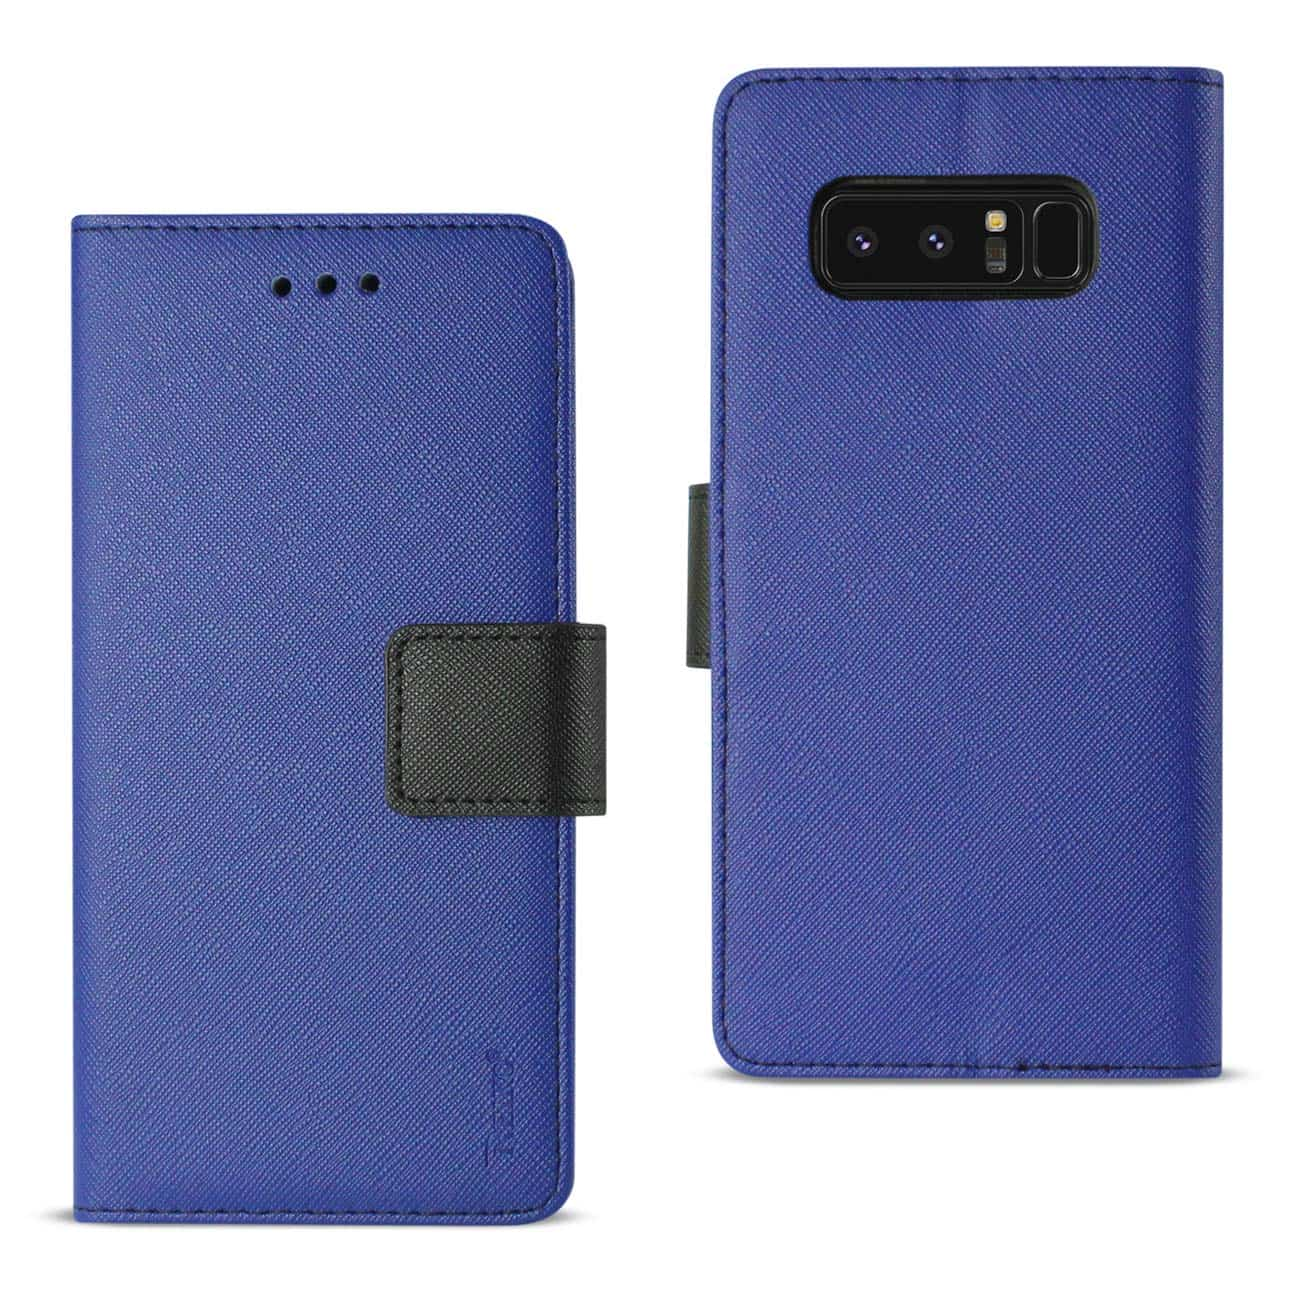 SAMSUNG GALAXY NOTE 8 3-IN-1 WALLET CASE IN NAVY